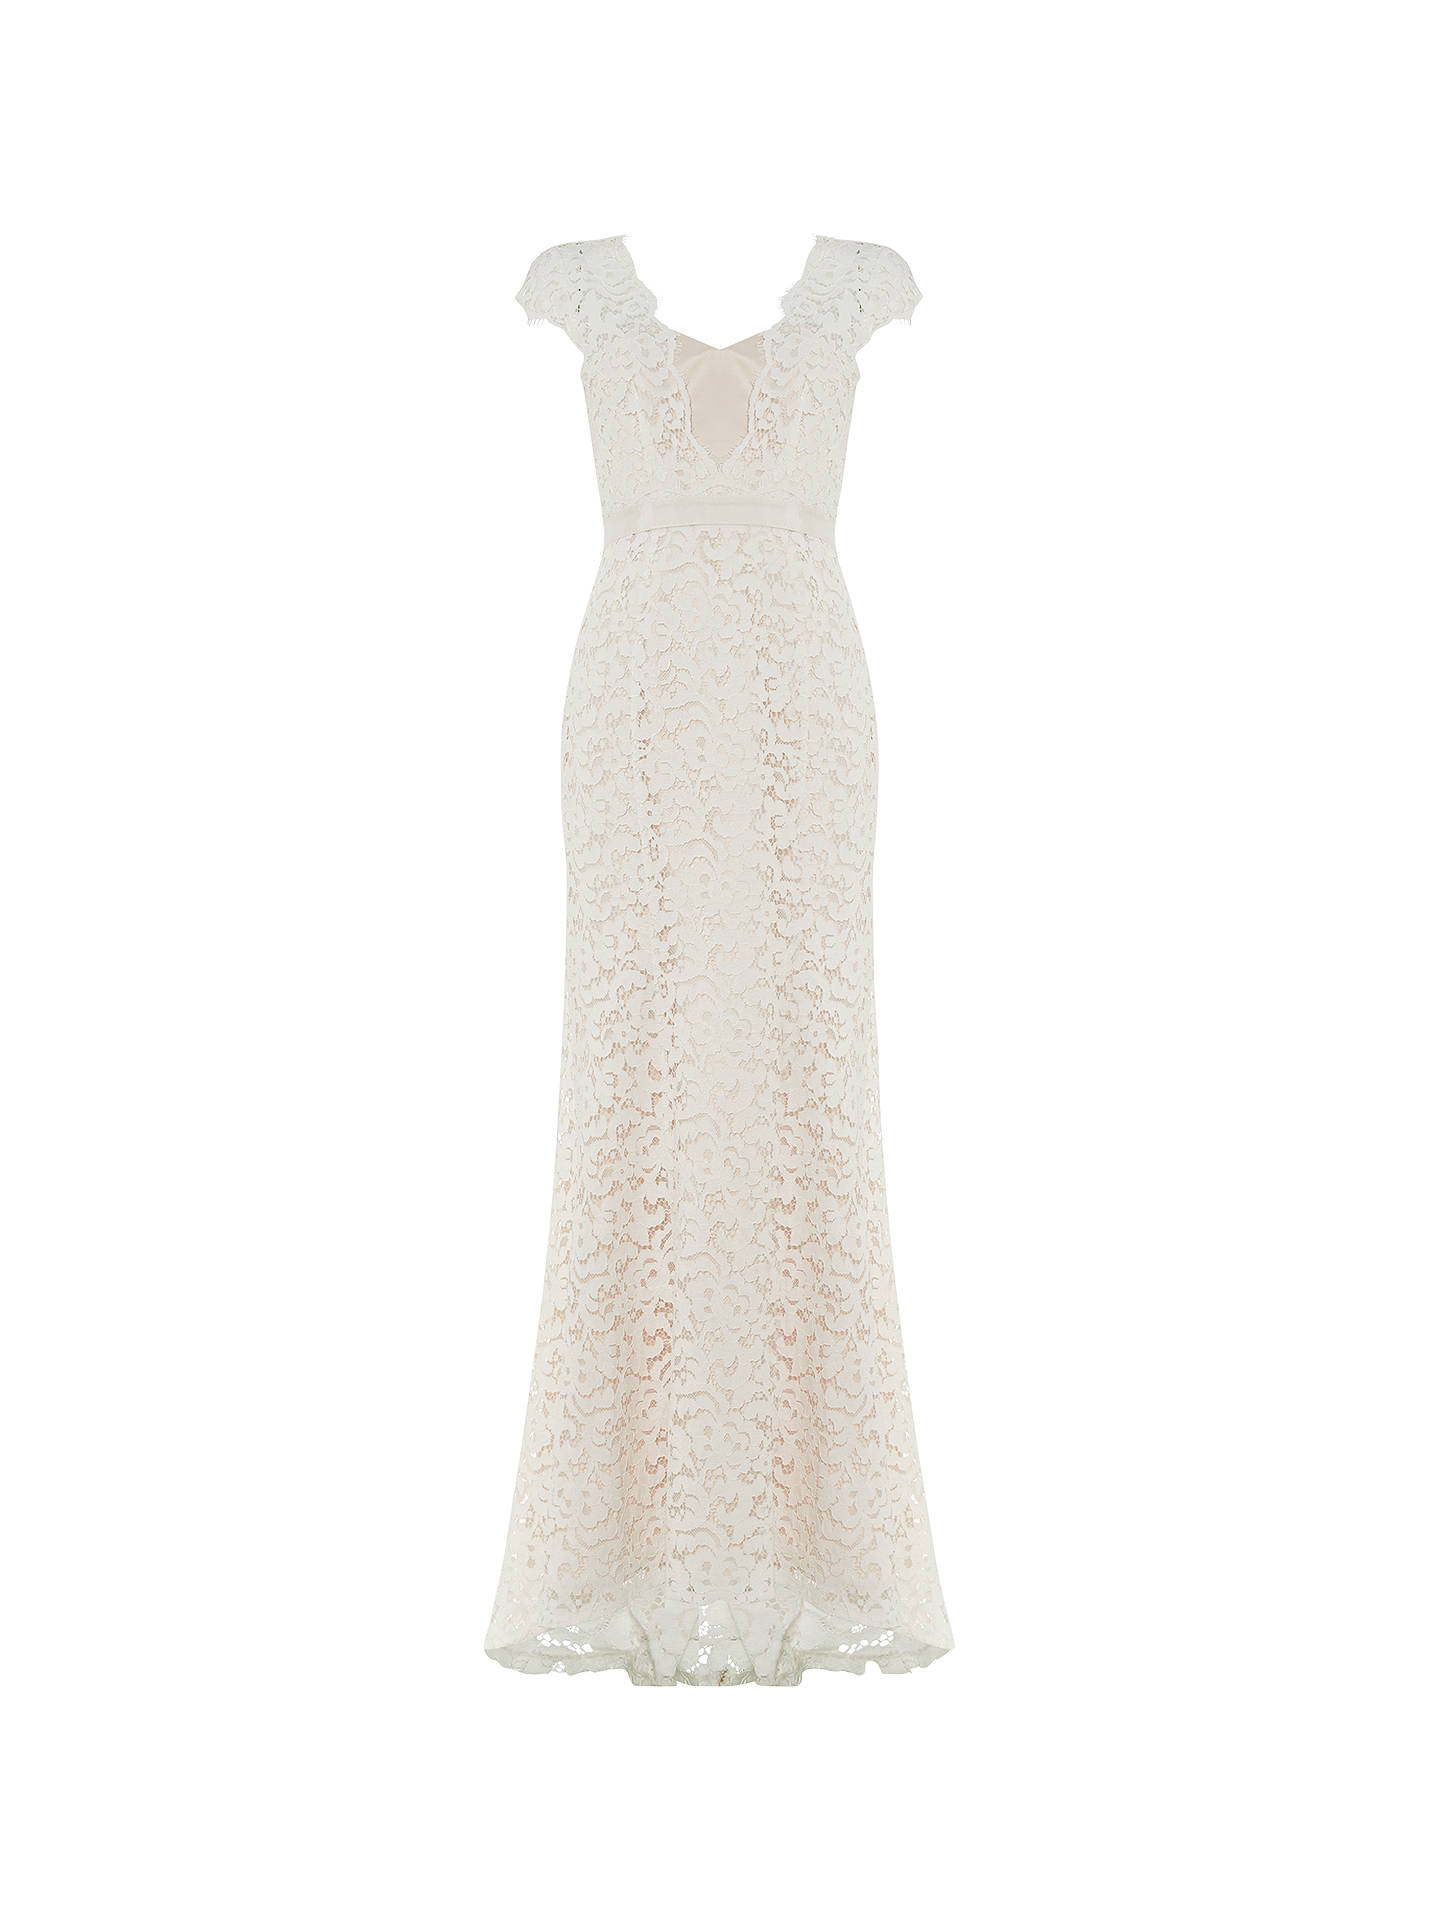 BuyPhase Eight Maegen Lace Bridal Dress, Snow, 8 Online at johnlewis.com